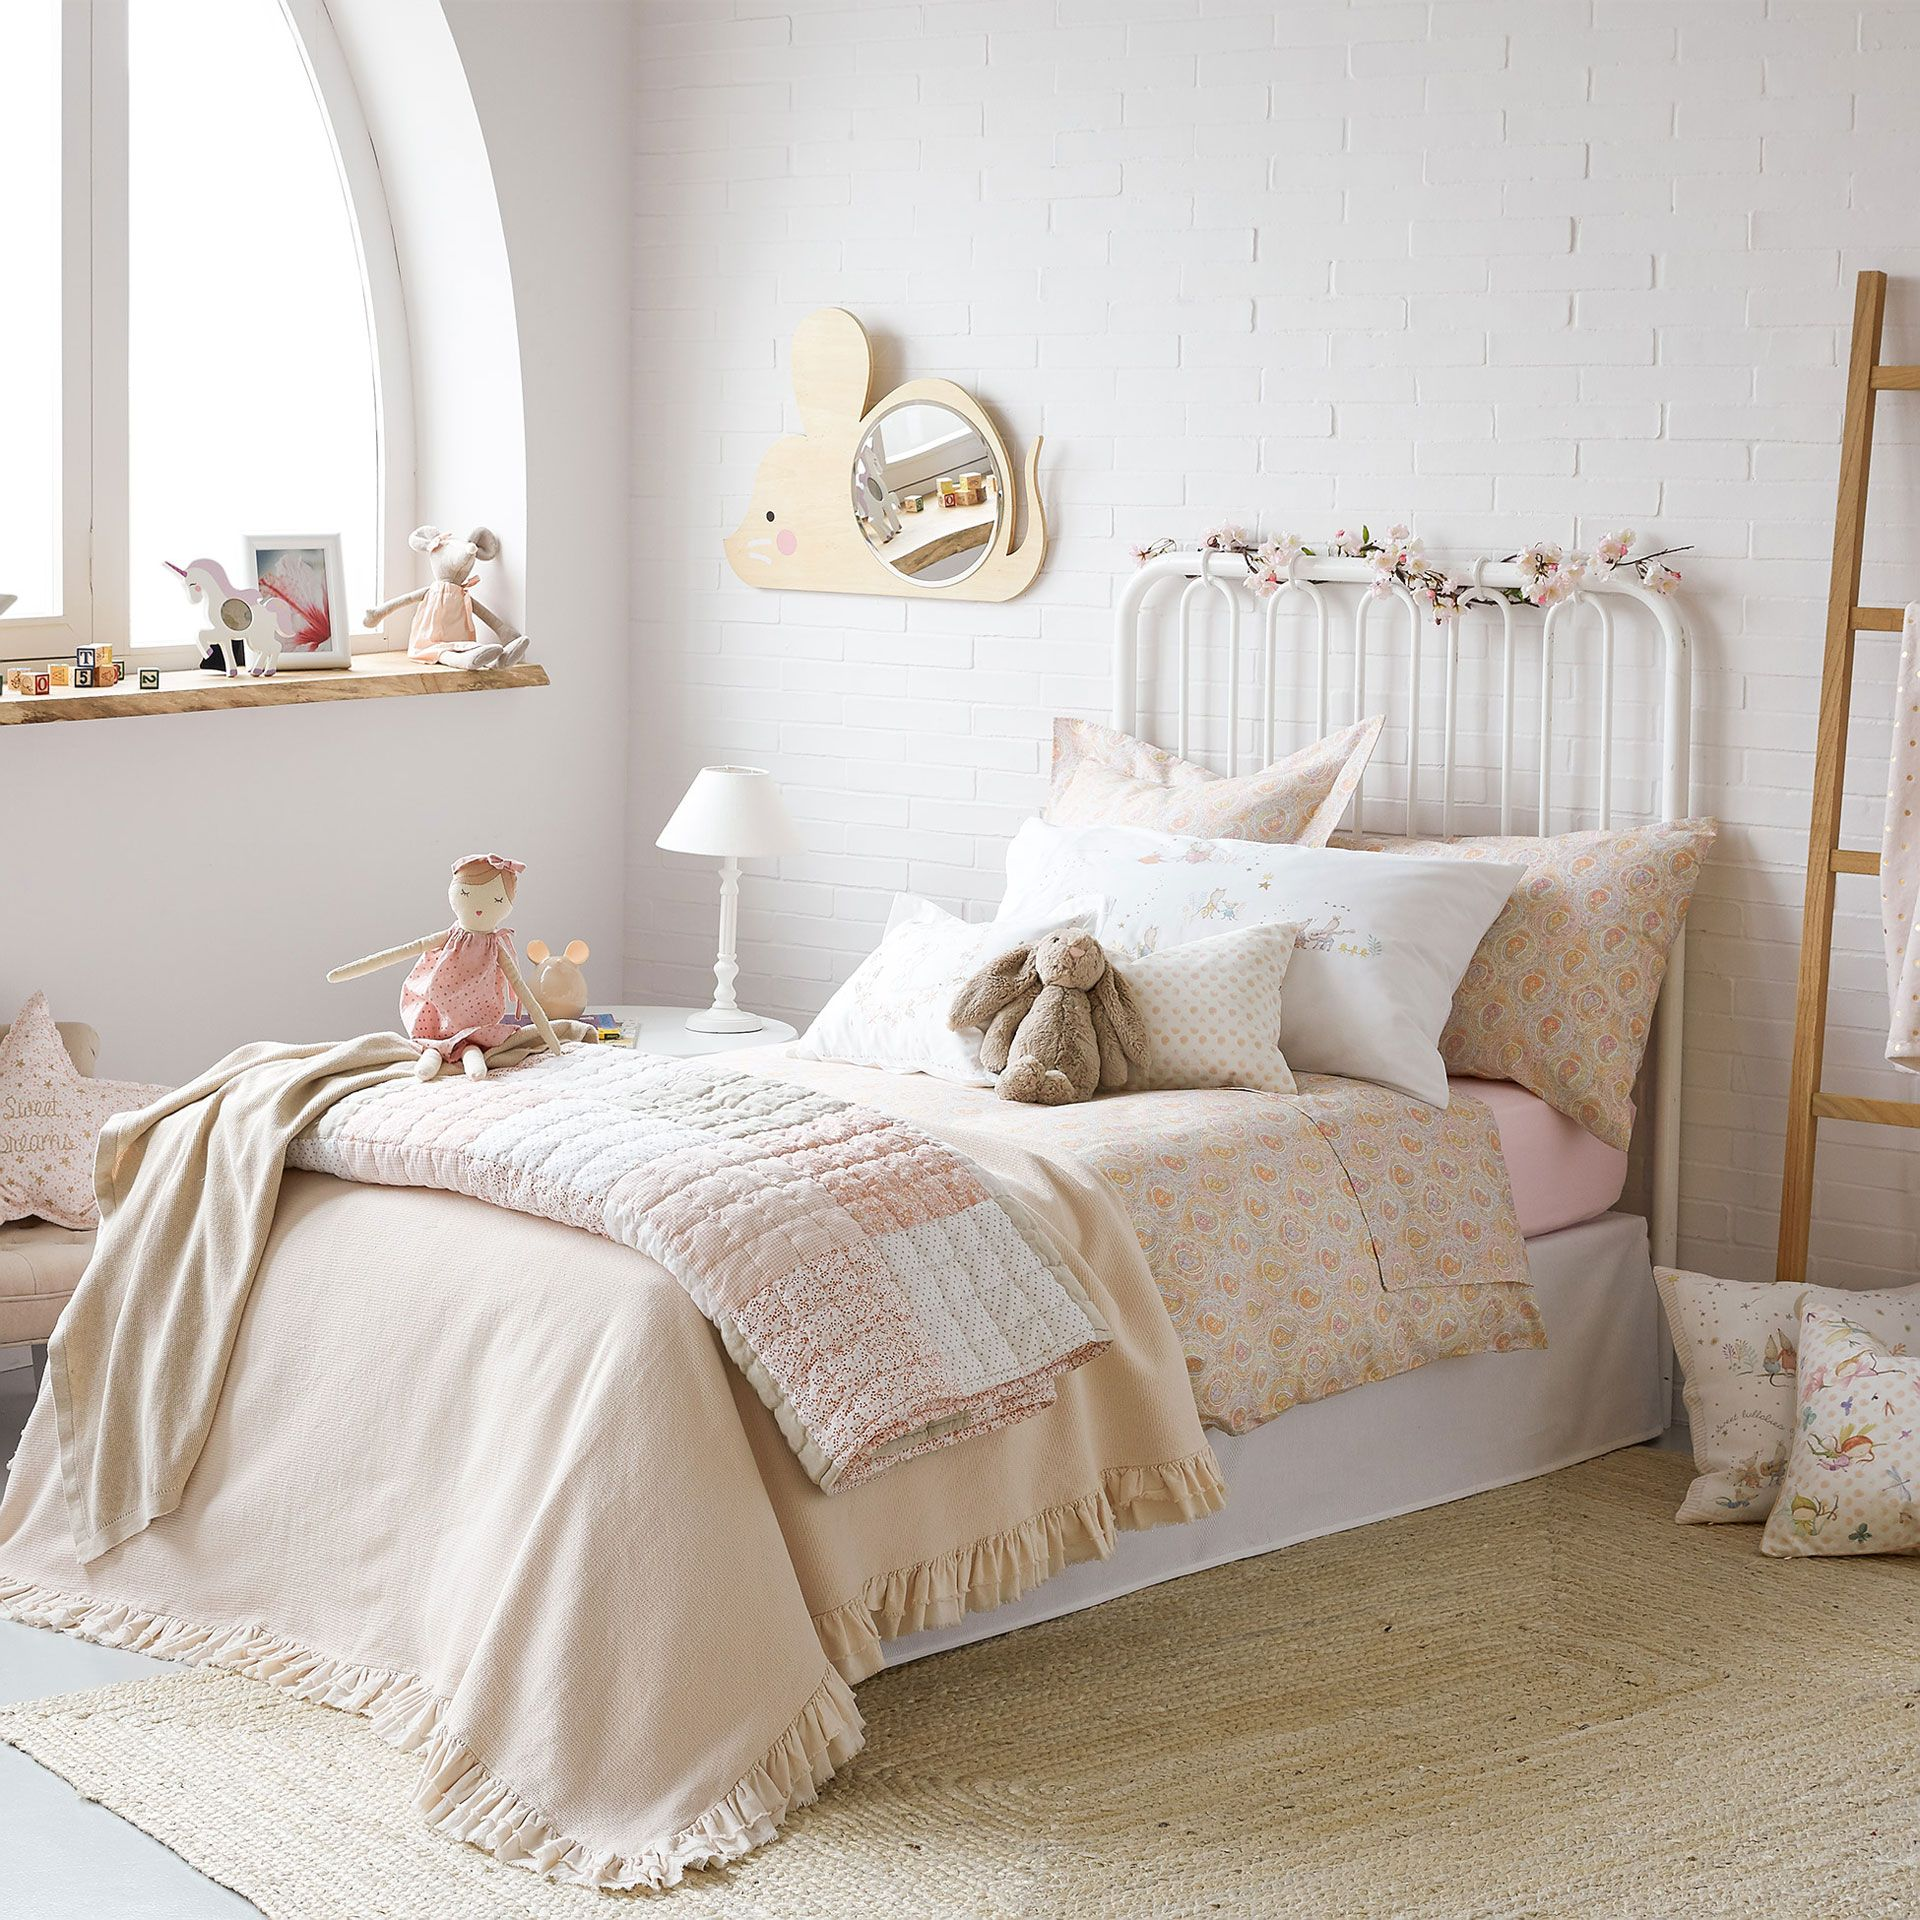 Bedspread designs texture - Textured Cotton Bedspread And Cushion Cover With Double Frill Bedspreads Bedroom Kids Collection